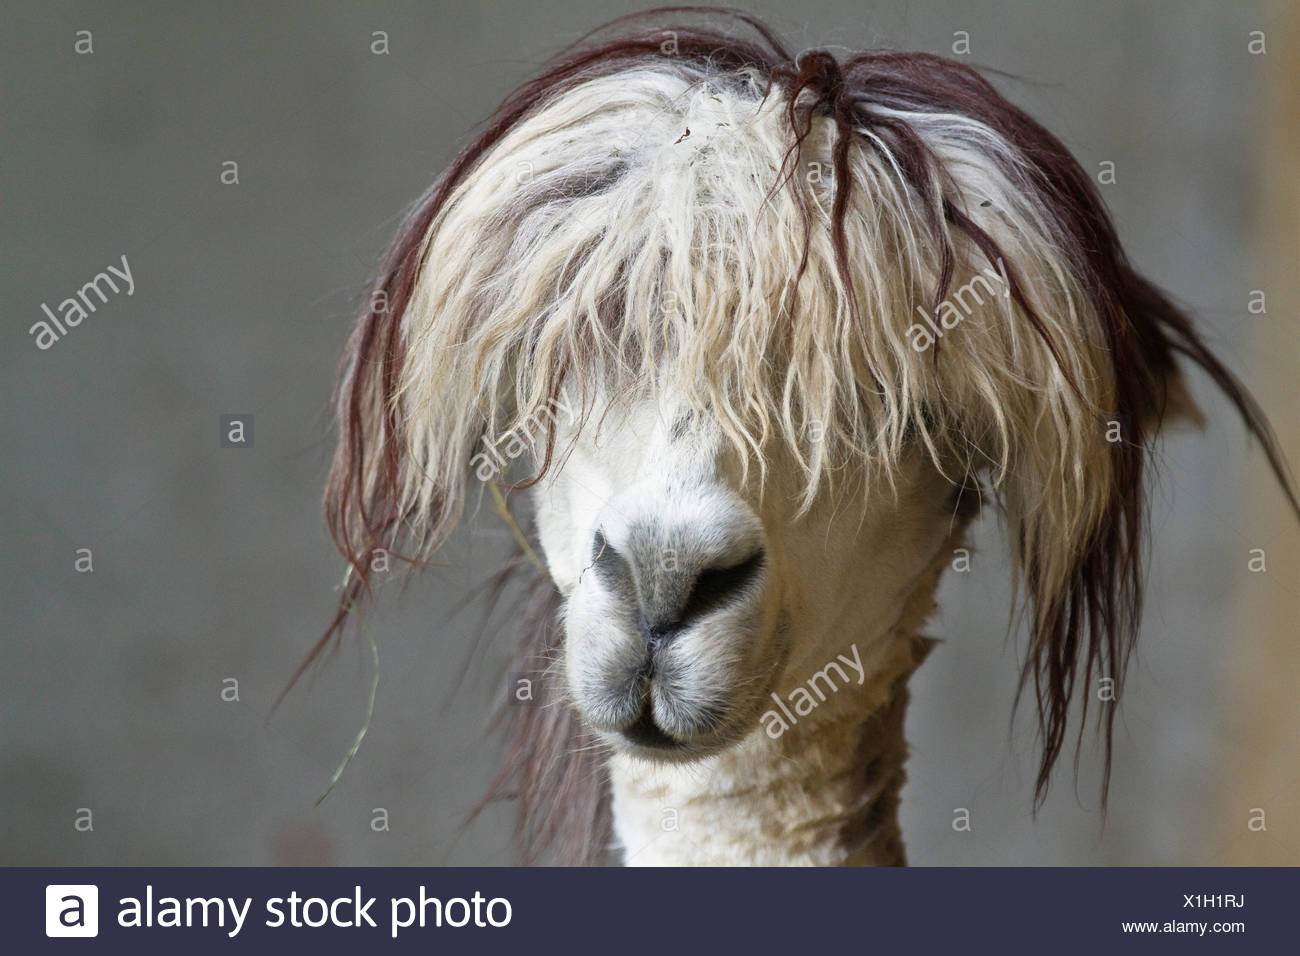 Lama pacos, alpaca with funny hairstyle in a zoo, Andes, South America, America - Stock Image